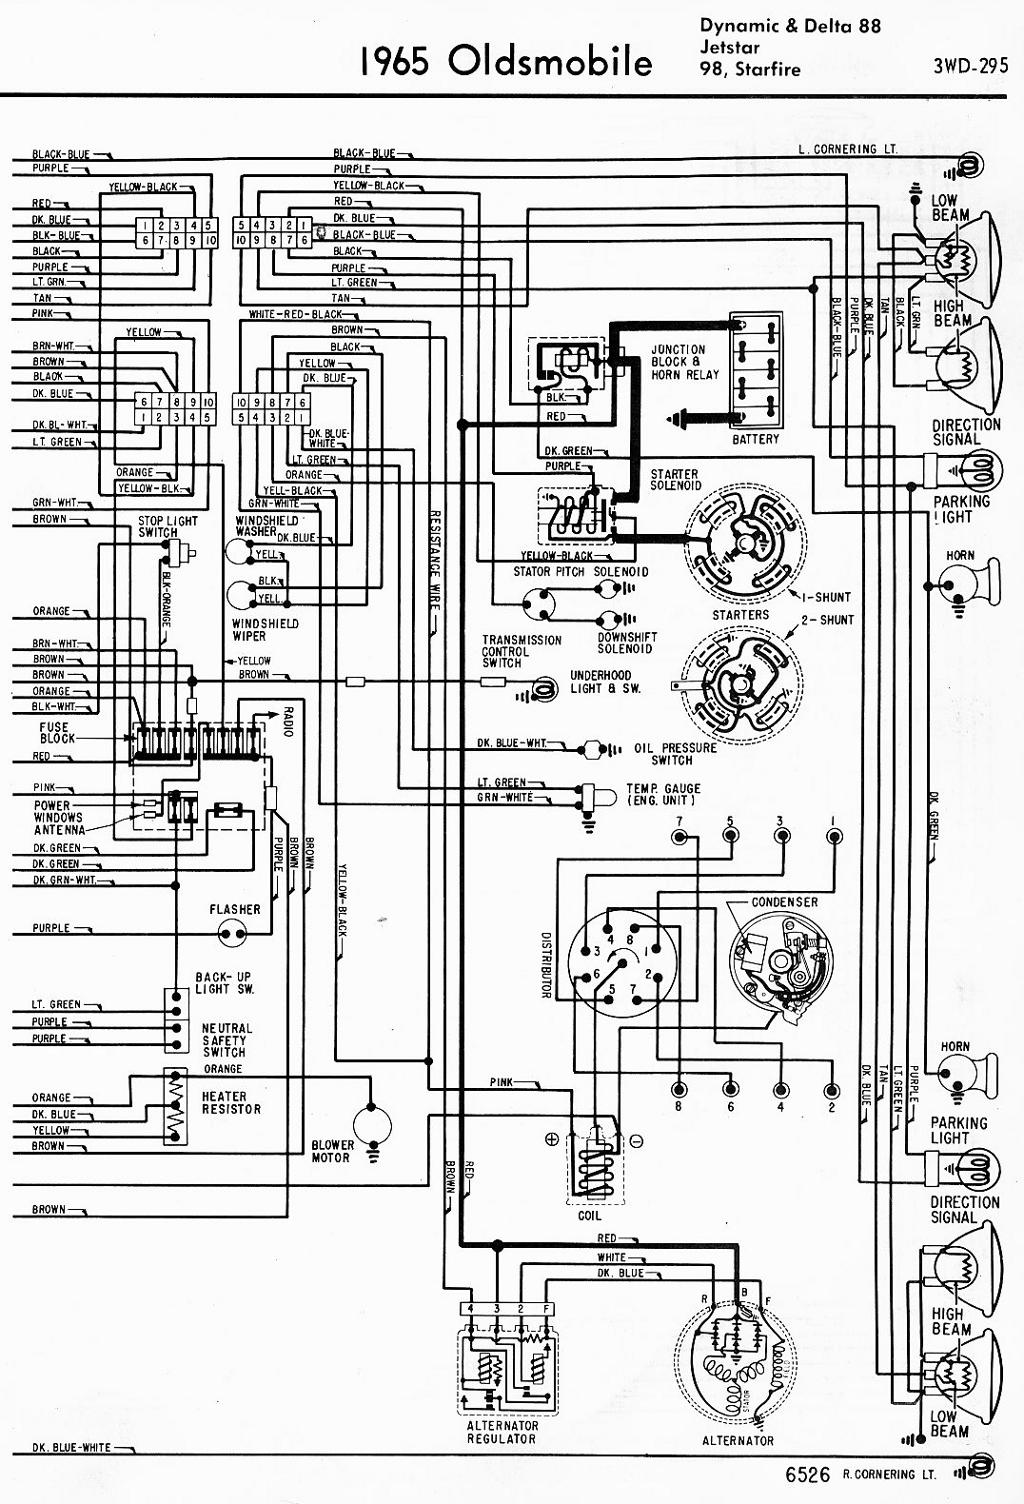 hight resolution of car radio wiring diagram 1998 oldsmobile simple wiring schema timing chain diagram free download wiring diagram schematic